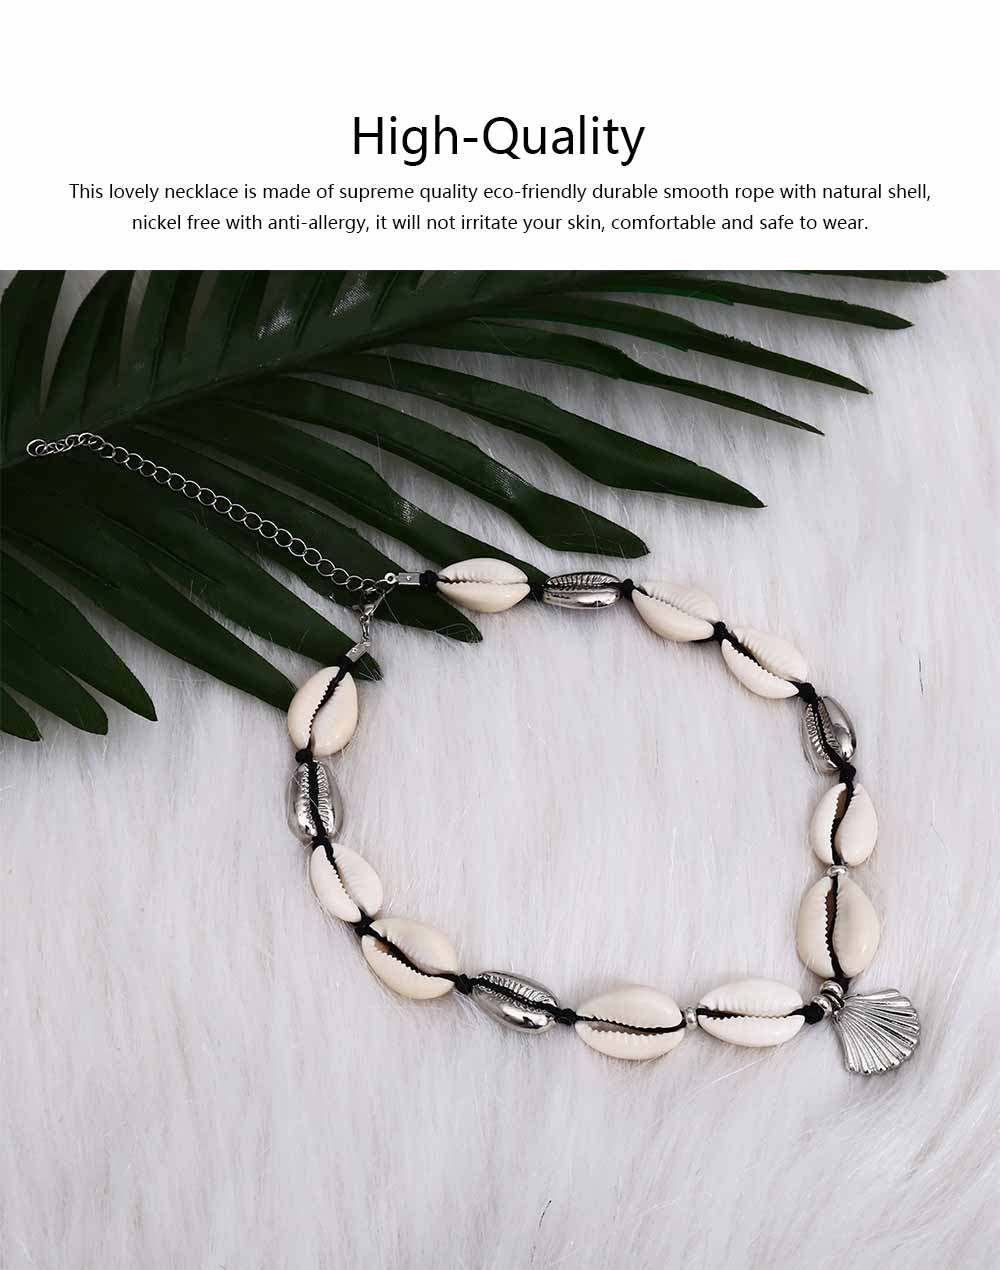 Handmade Shell Necklace Clavicle Chain for Women, Natural Shell Necklace Bracelet Cowrie Choker Collarbone Chain, Adjustable Trible Charms Jewelry 2